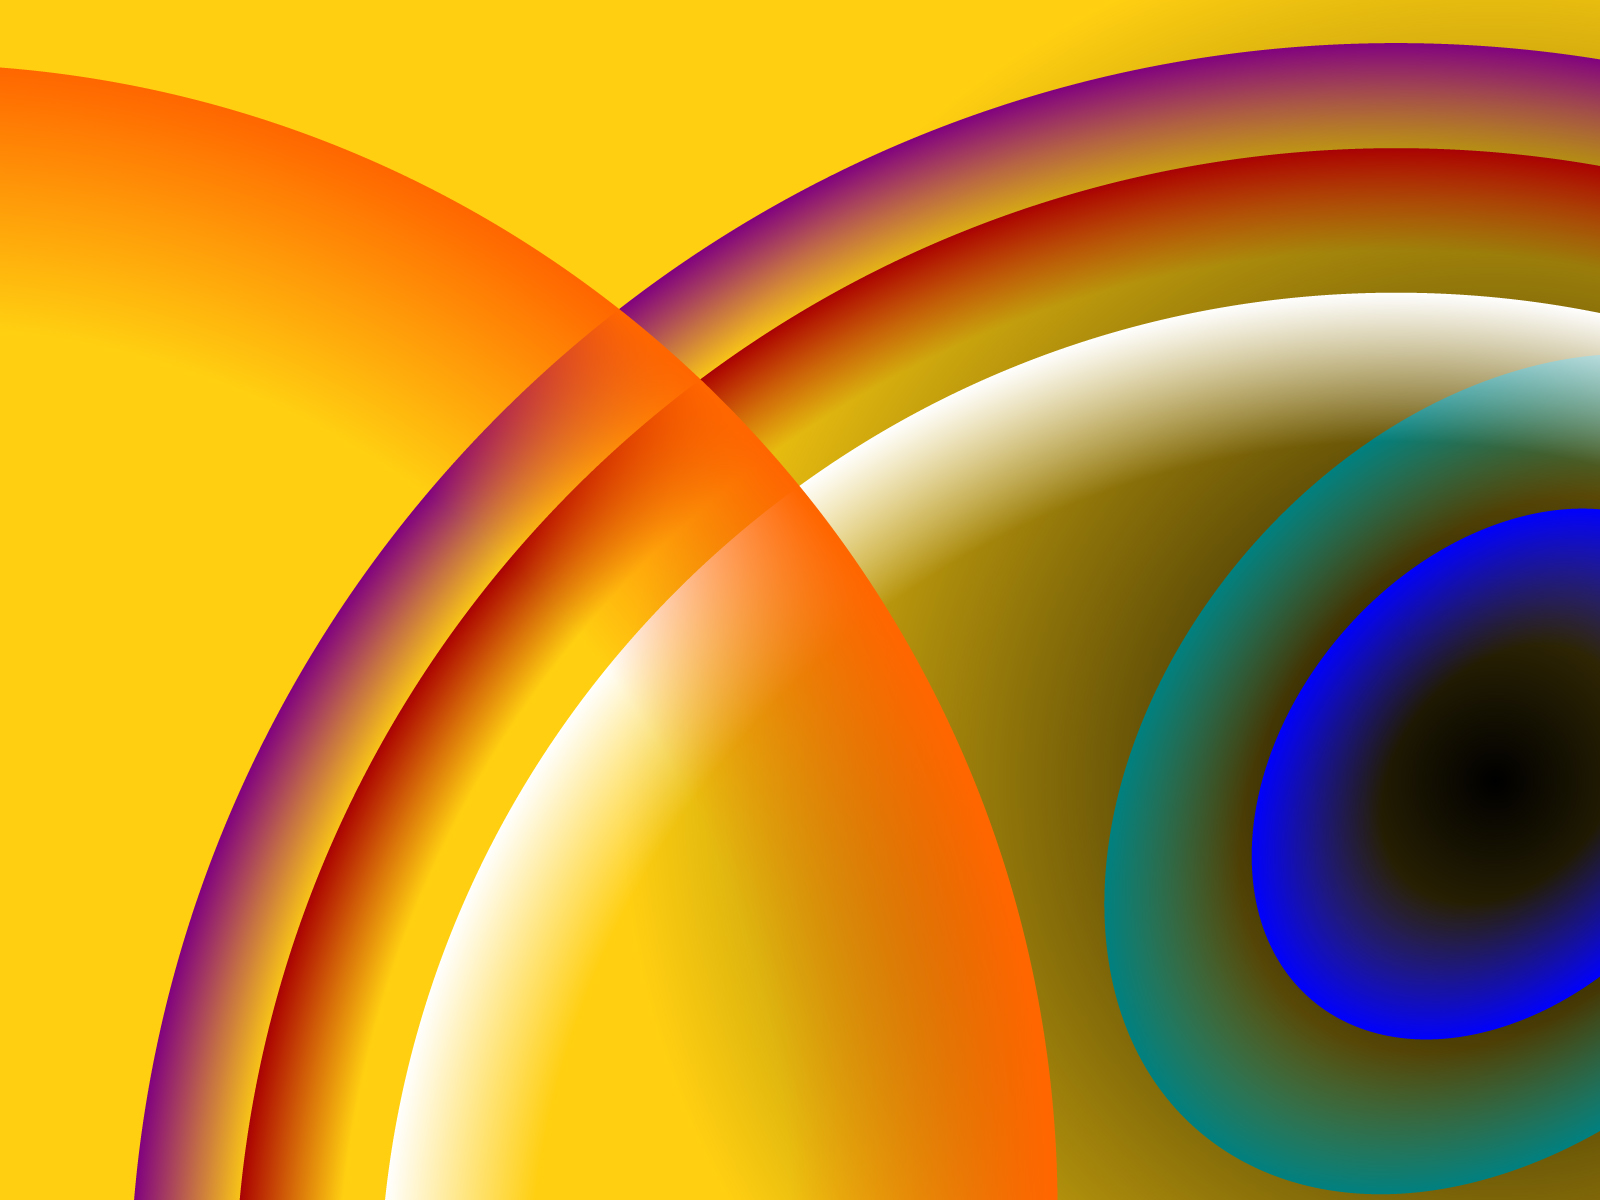 Abstract Circles Powerpoint Backgrounds